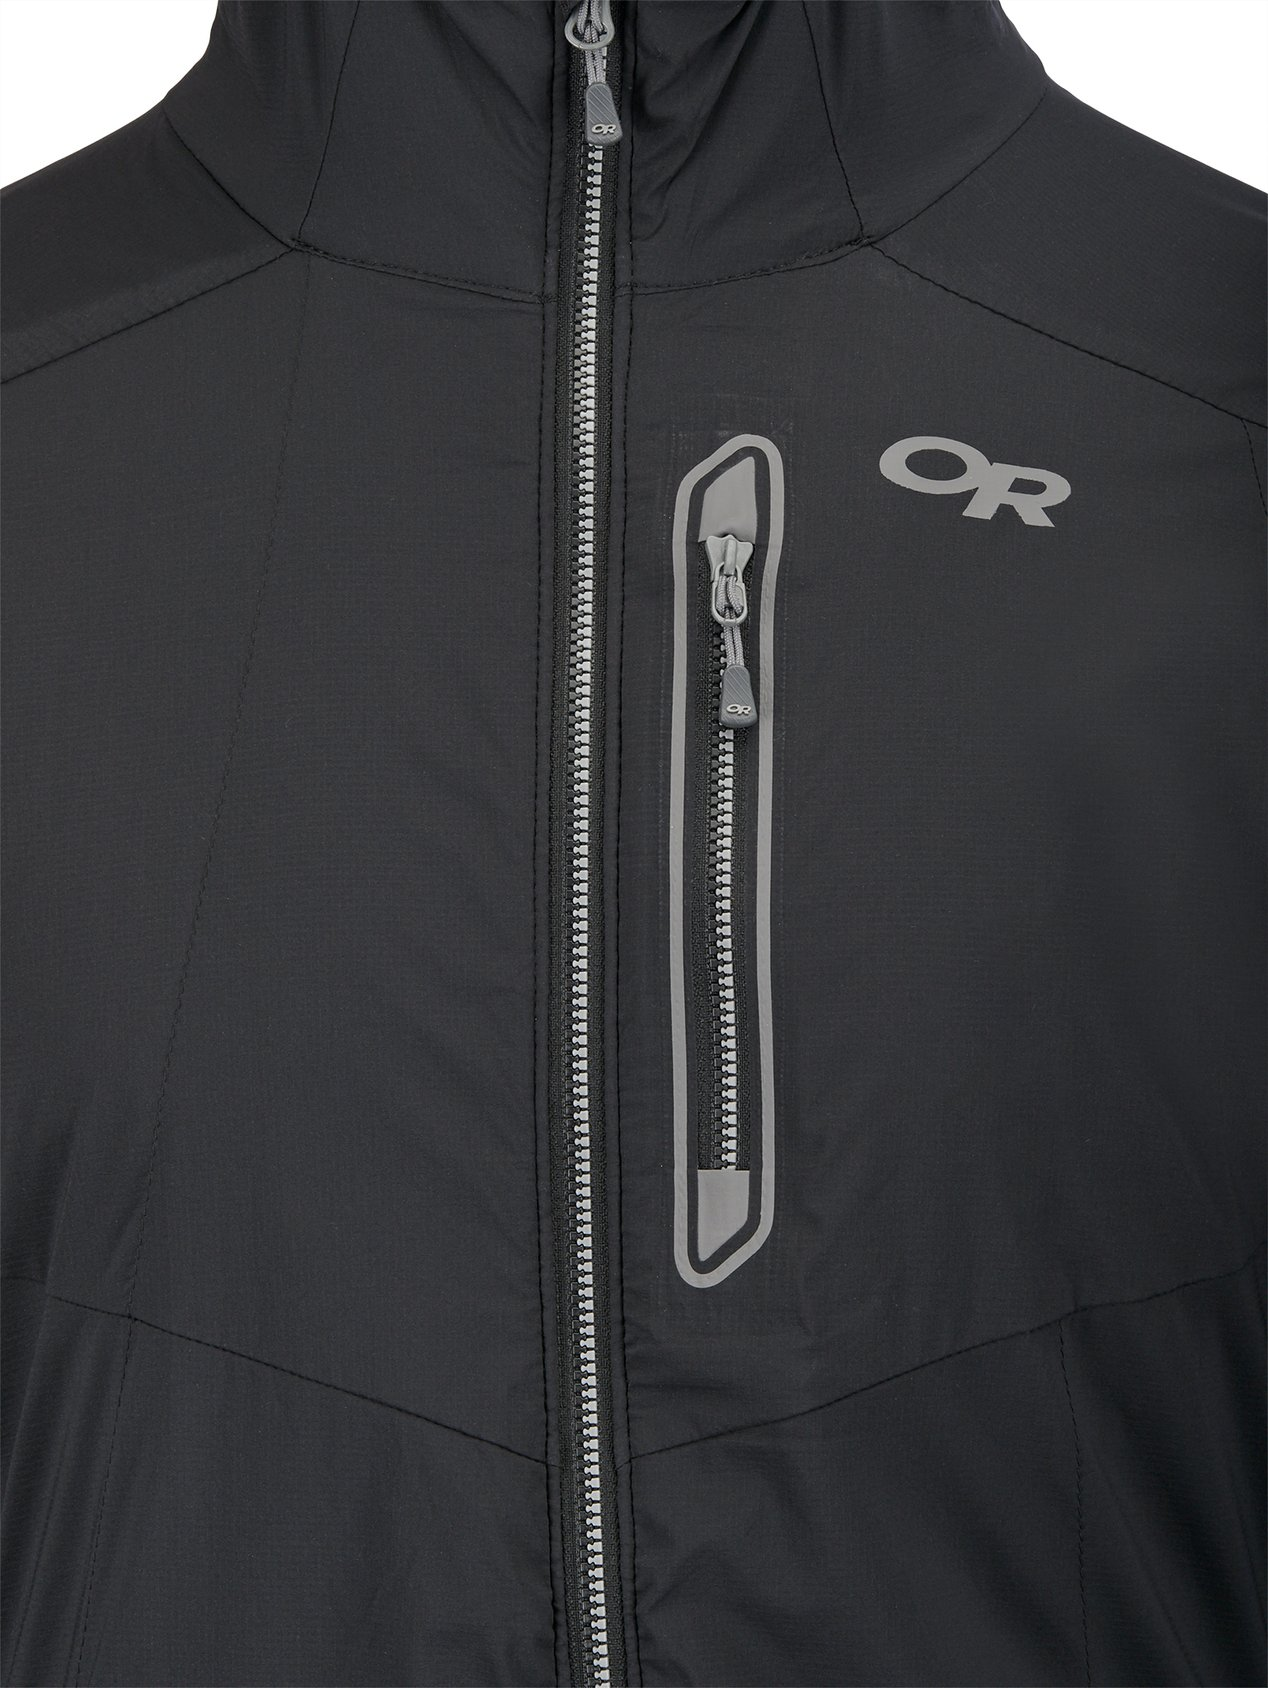 Outdoor Research Ascendant Vest Front Pocket View